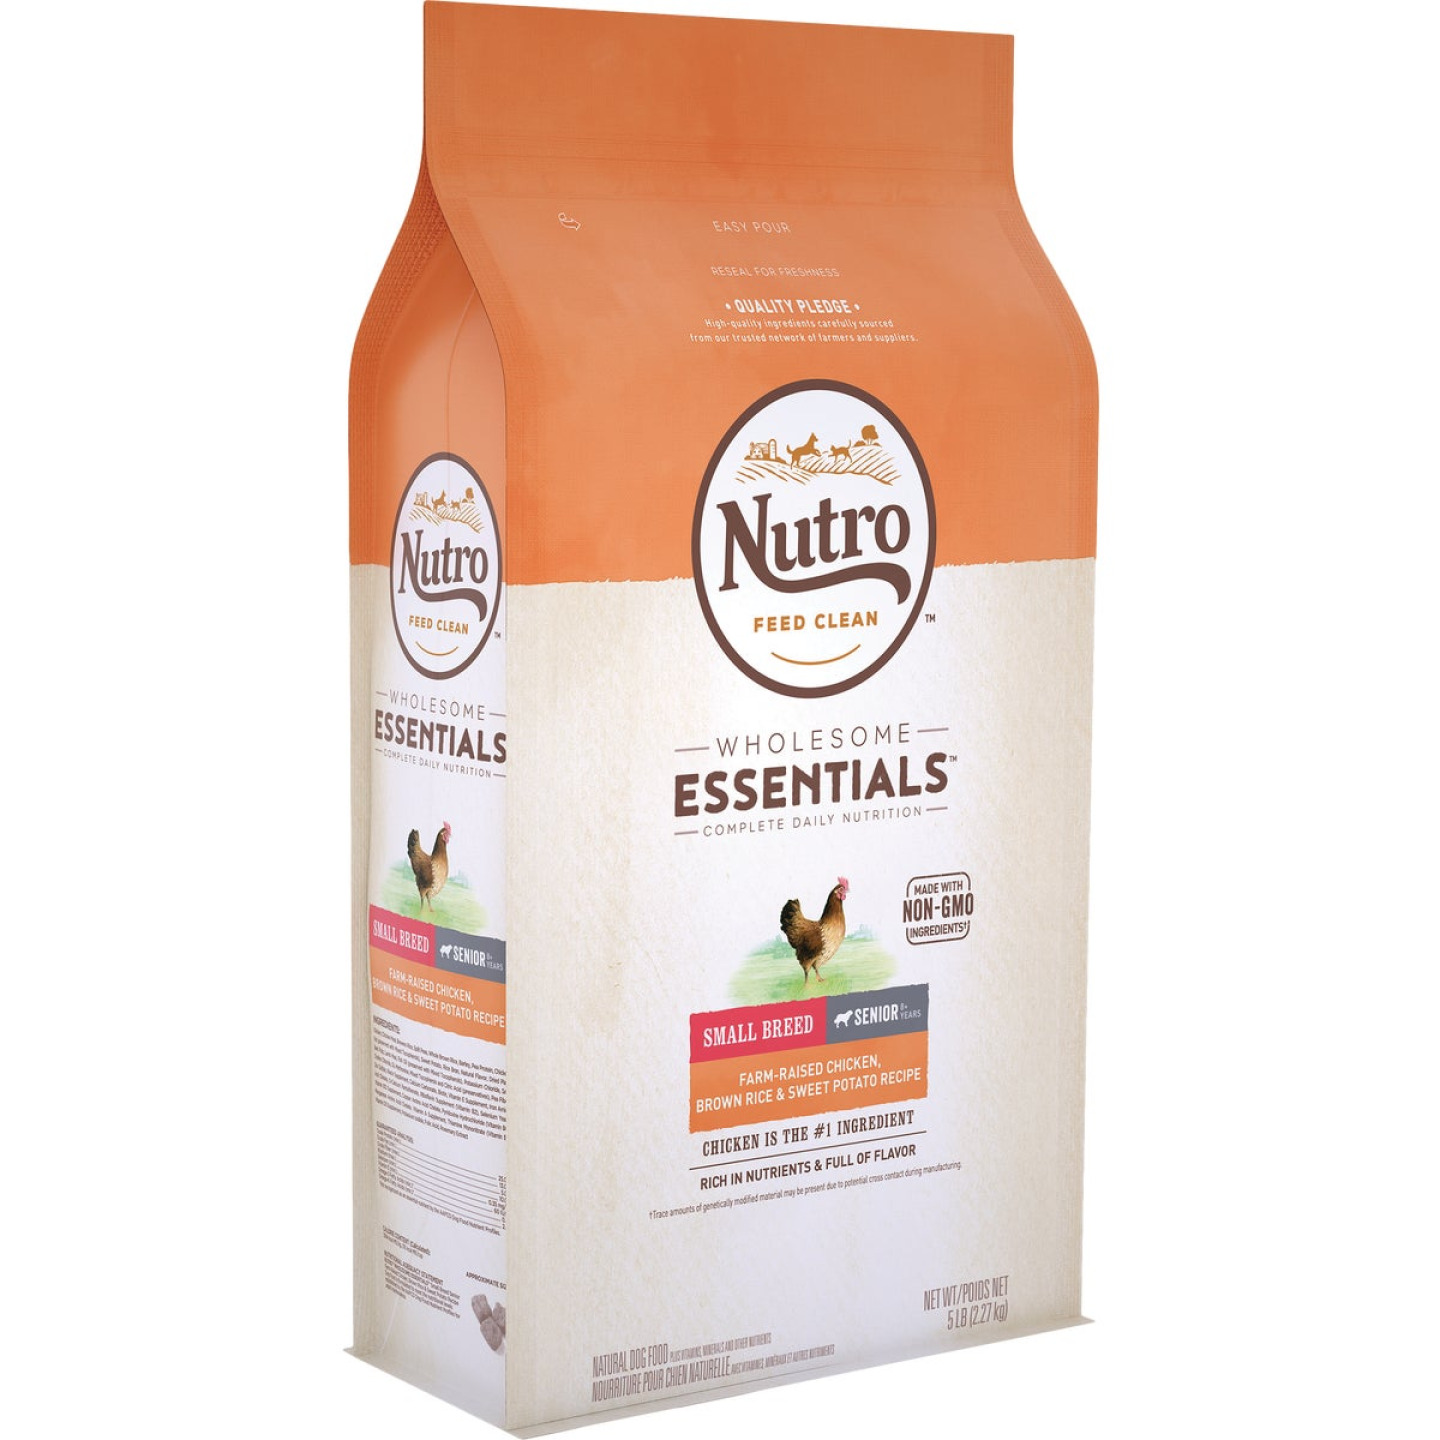 Nutro Wholesome Essentials 5 Lb. Chicken, Brown Rice, & Sweet Potato Small Breed Senior Dry Dog Food Image 1